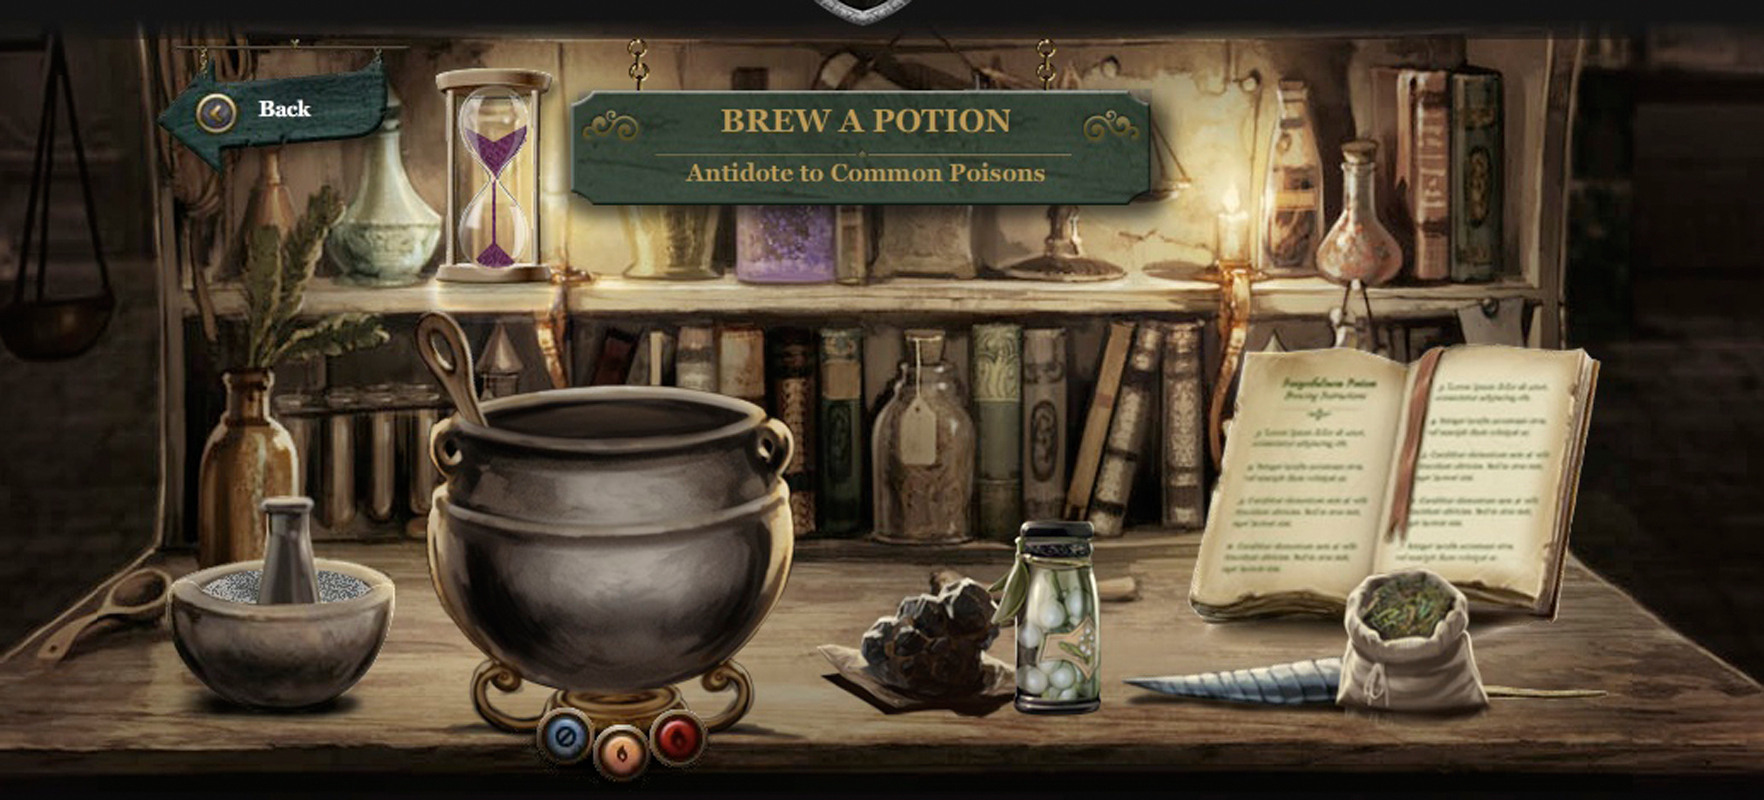 In Pottermore, users can brew potions as a way of earning house points. Users can also cast spells and duel each other in order to help their house win the House Cup. (credit: Courtesy of Sony)